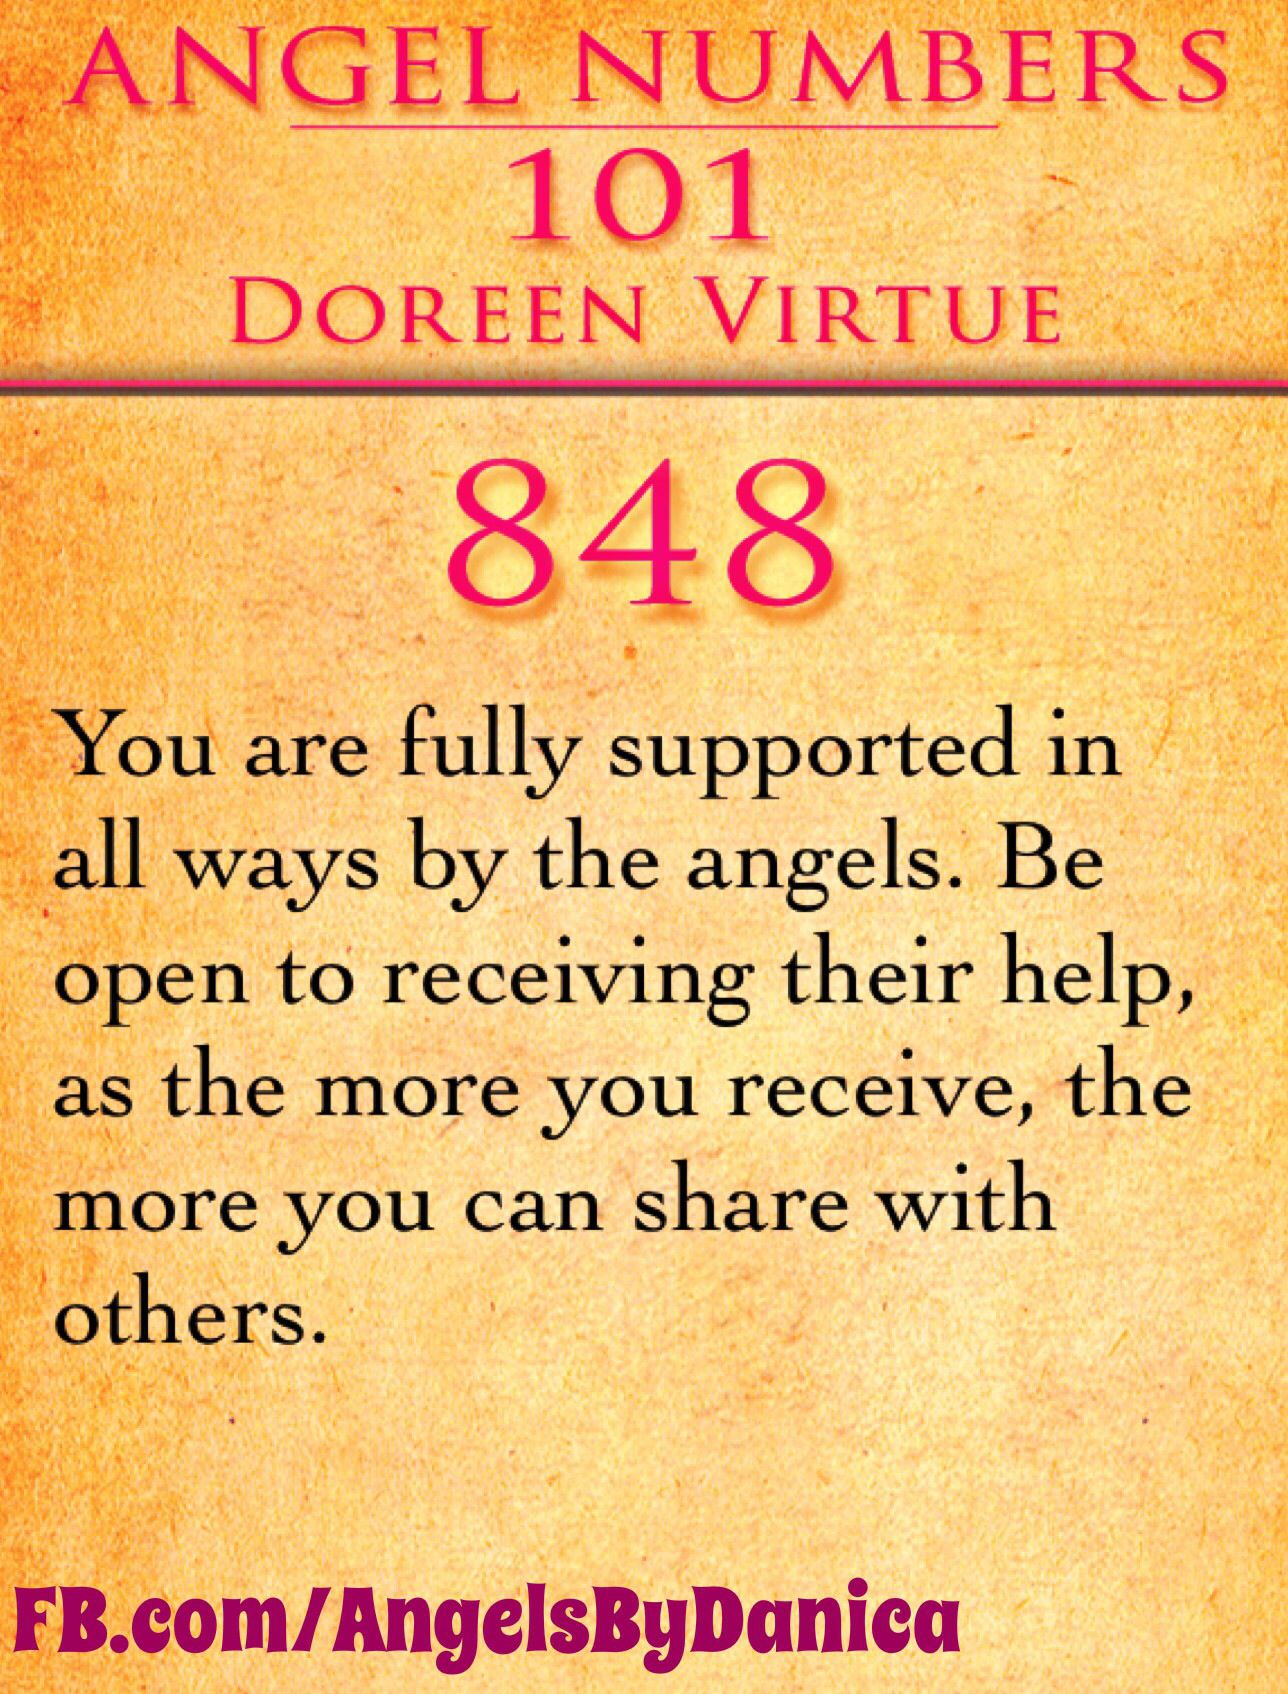 5555 meaning doreen virtue - Angel Numbers 101 1122 Or 2211 Doreen Virtue Understanding Numerology Pinterest Angel Numbers Numbers And Angel